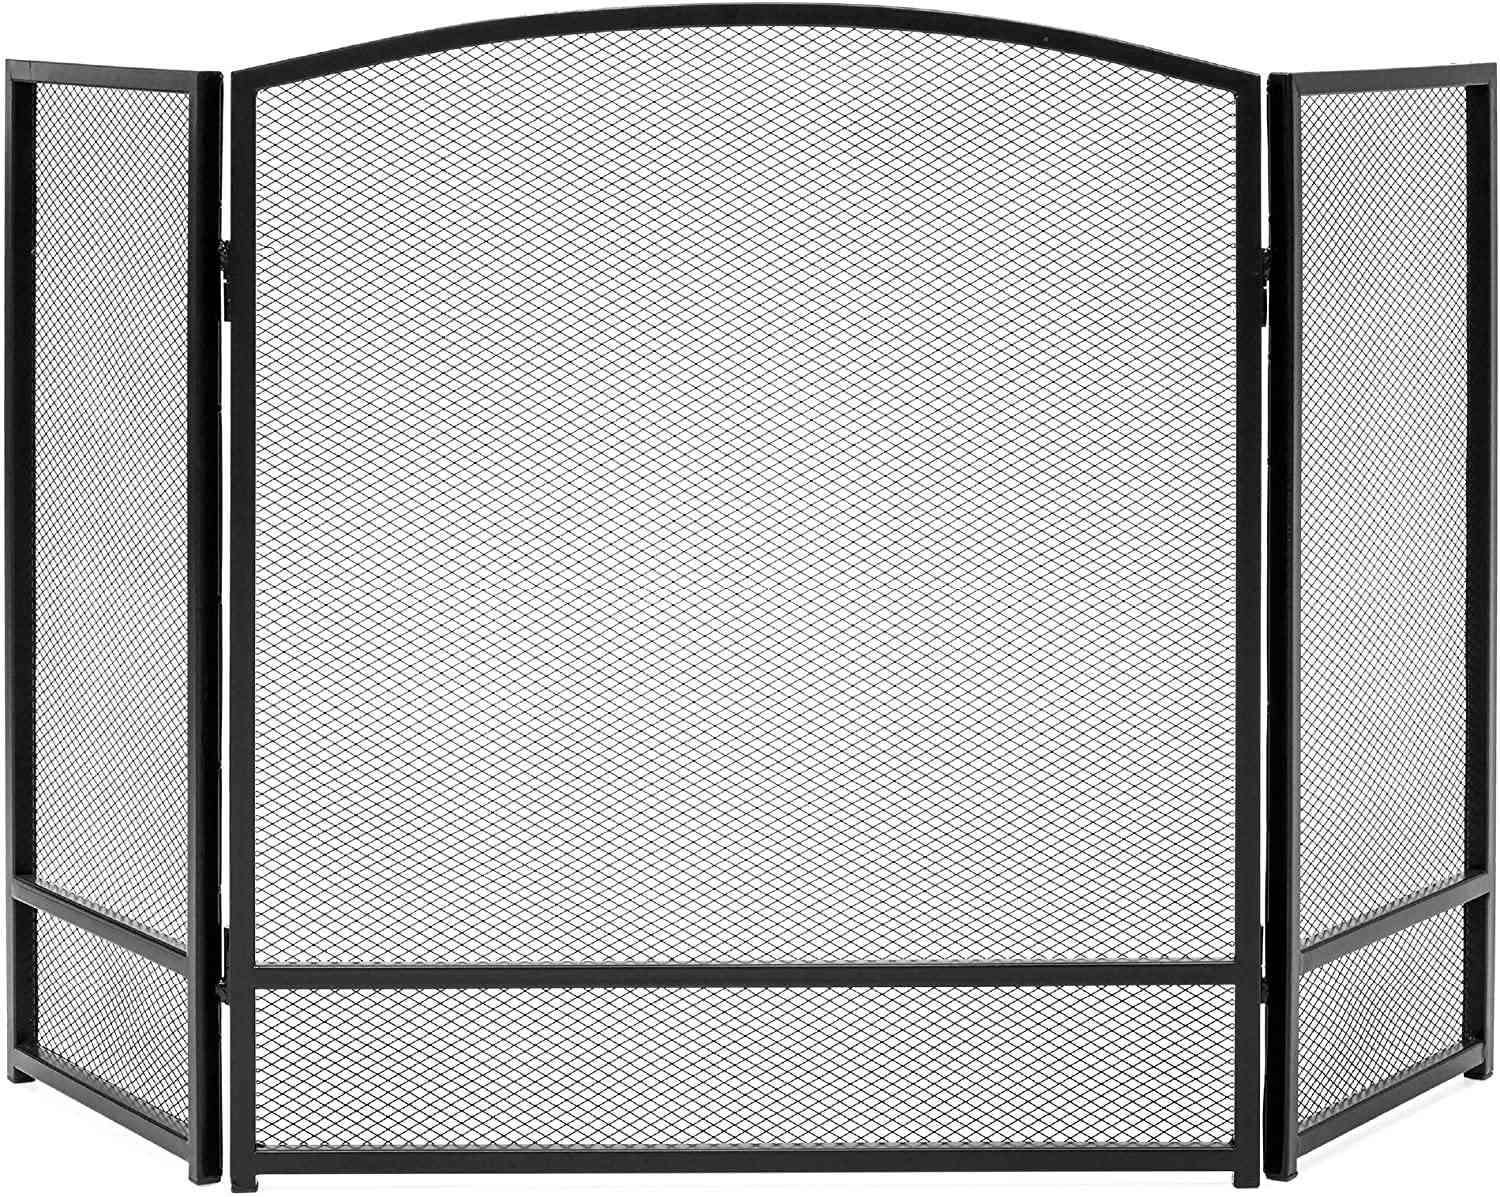 Best Choice Products 3-Panel Simple Steel Mesh Fireplace Screen